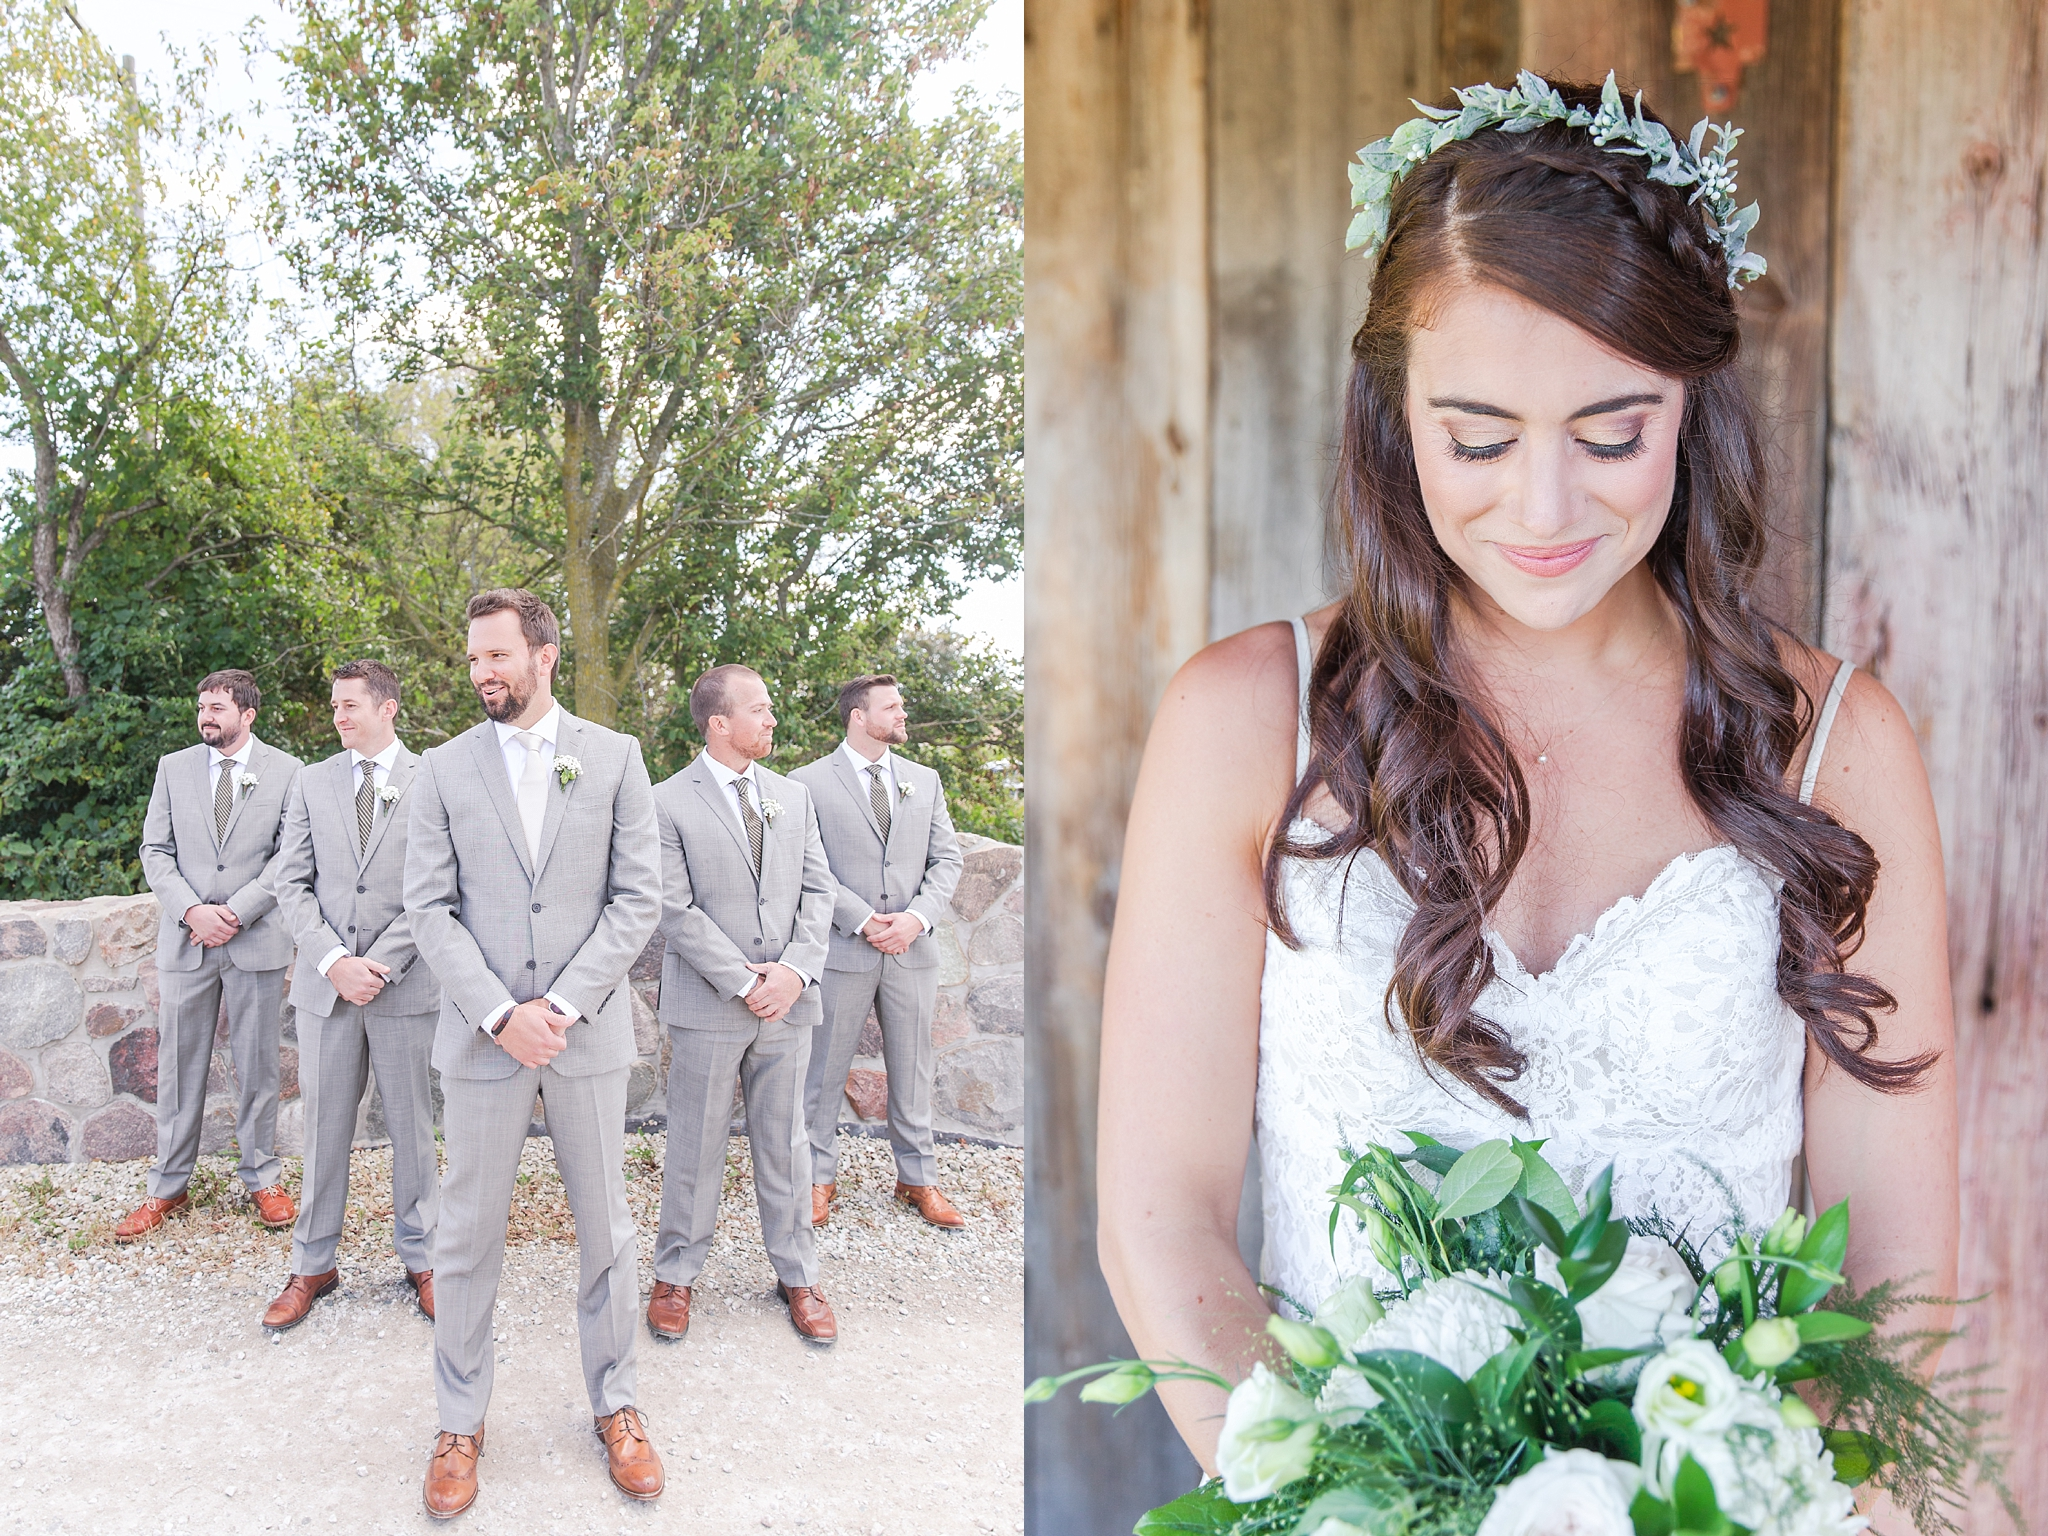 natural-rustic-wedding-photos-at-frutig-farms-the-valley-in-ann-arbor-michigan-by-courtney-carolyn-photography_0033.jpg